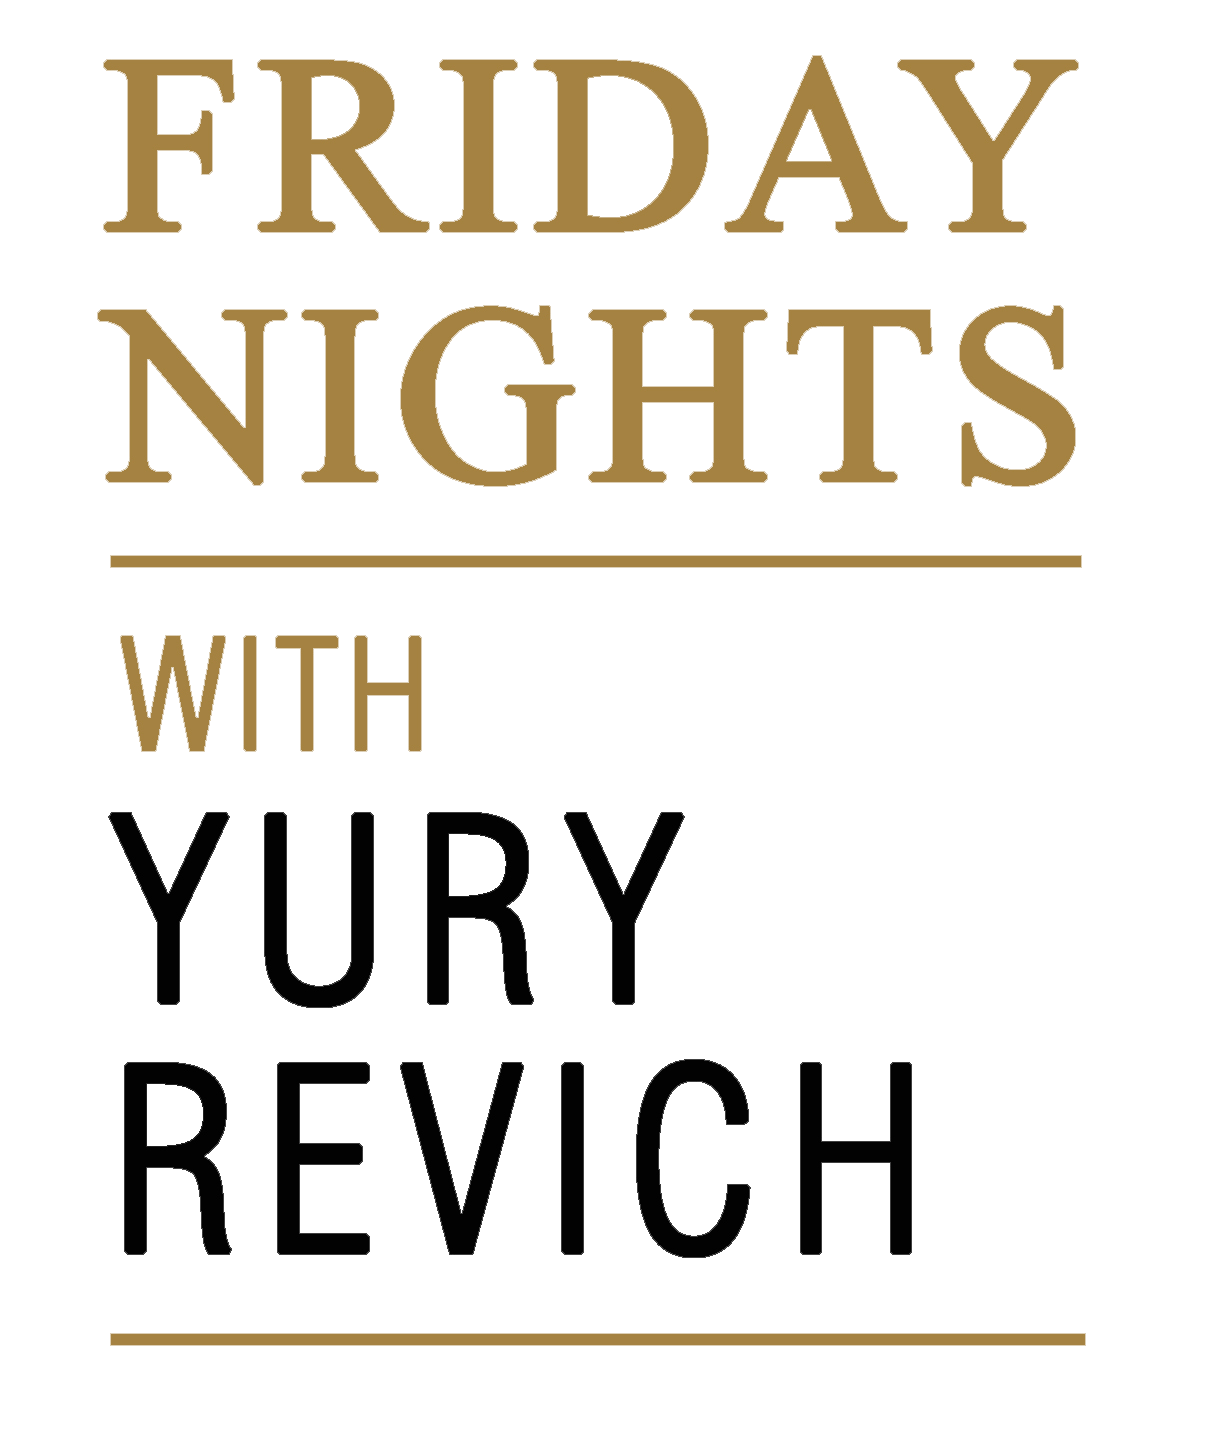 Friday Nights with Yury Revich